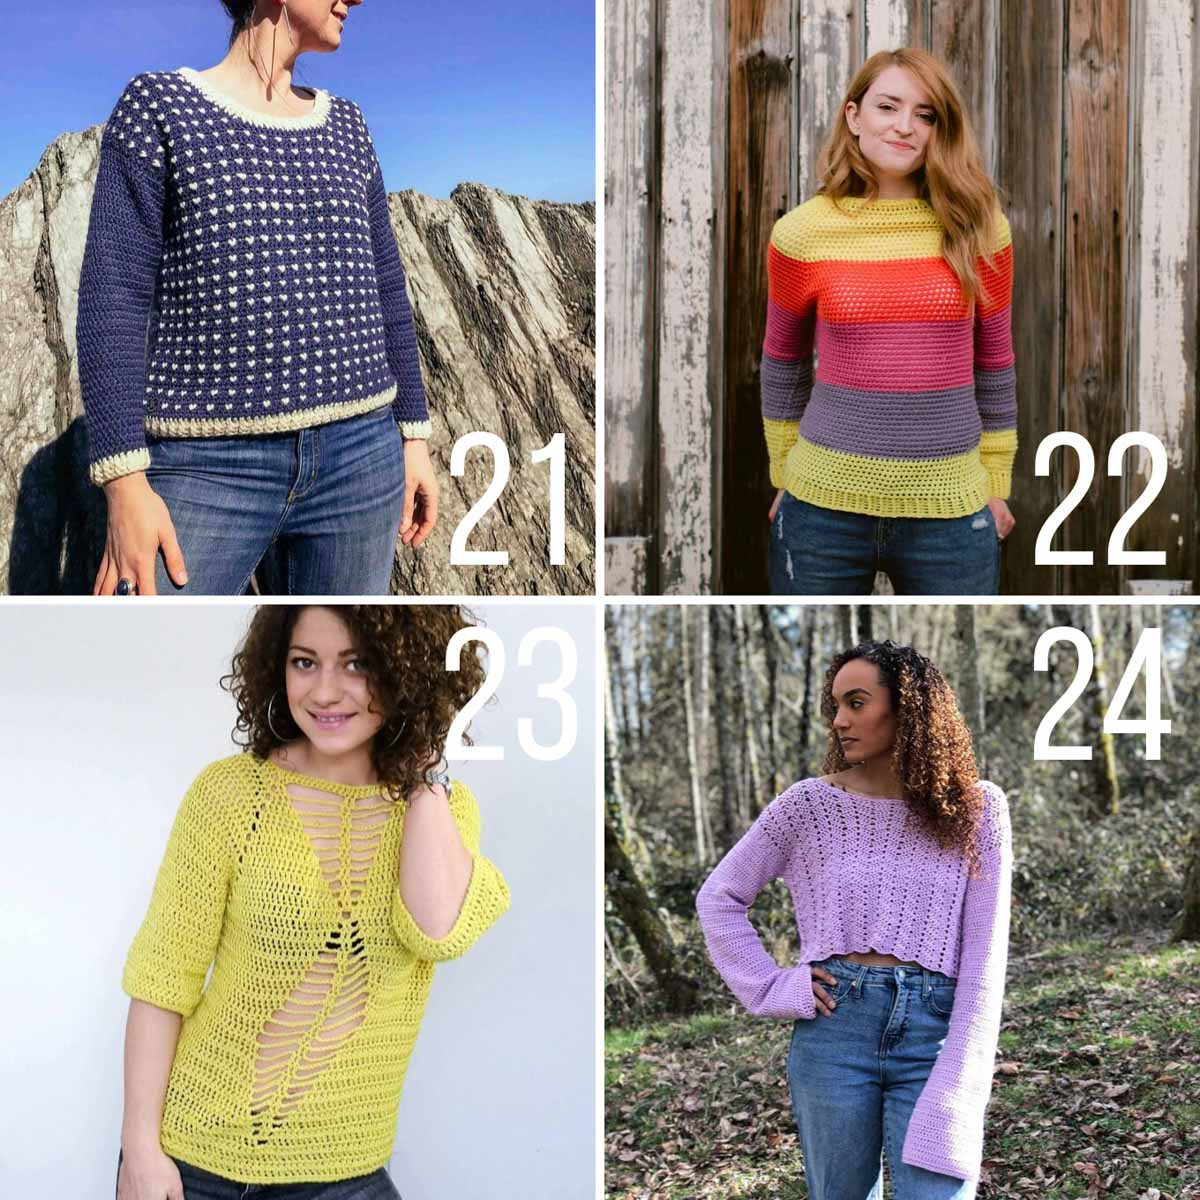 Four colorful crochet sweater patterns that are perfect for the warmer weather of spring and summer.